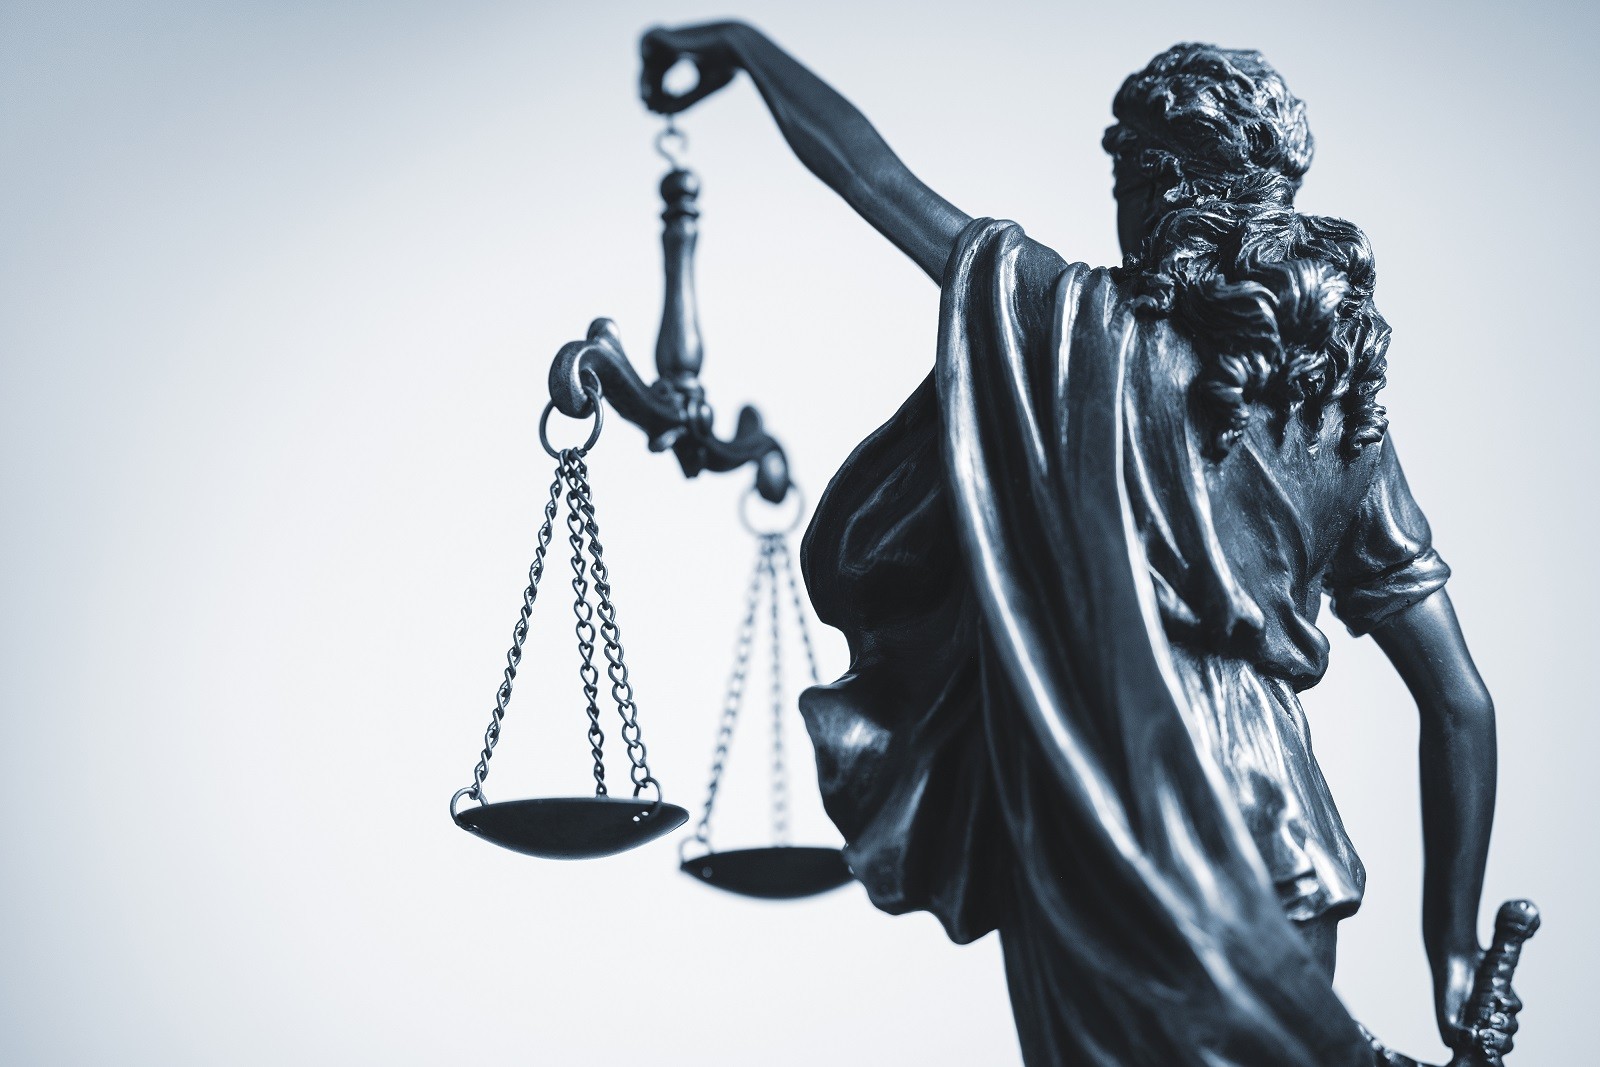 cropped view of statue of justice with the scales GF2DH9Y #новости Грузинская мечта, ЕСПЧ, Минюст, Ника Мелия, Страсбургский суд